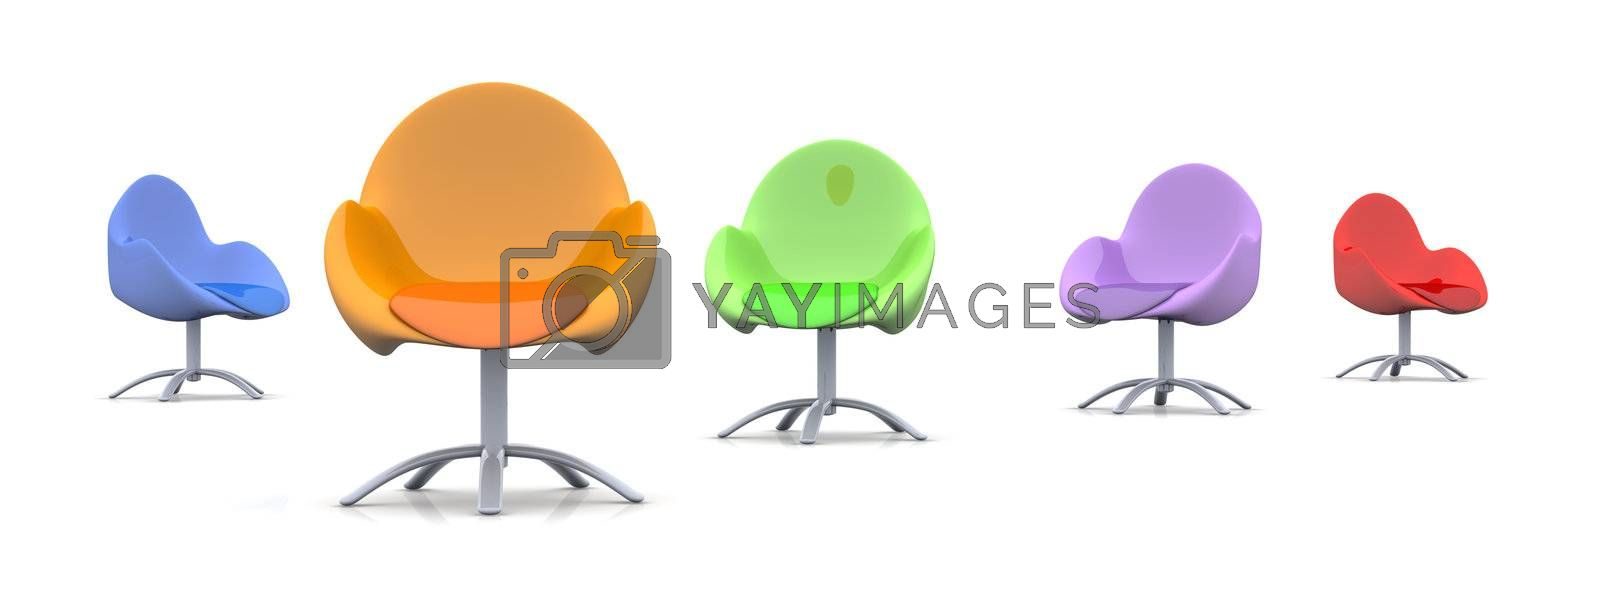 3D rendered Illustration. A group of chairs.